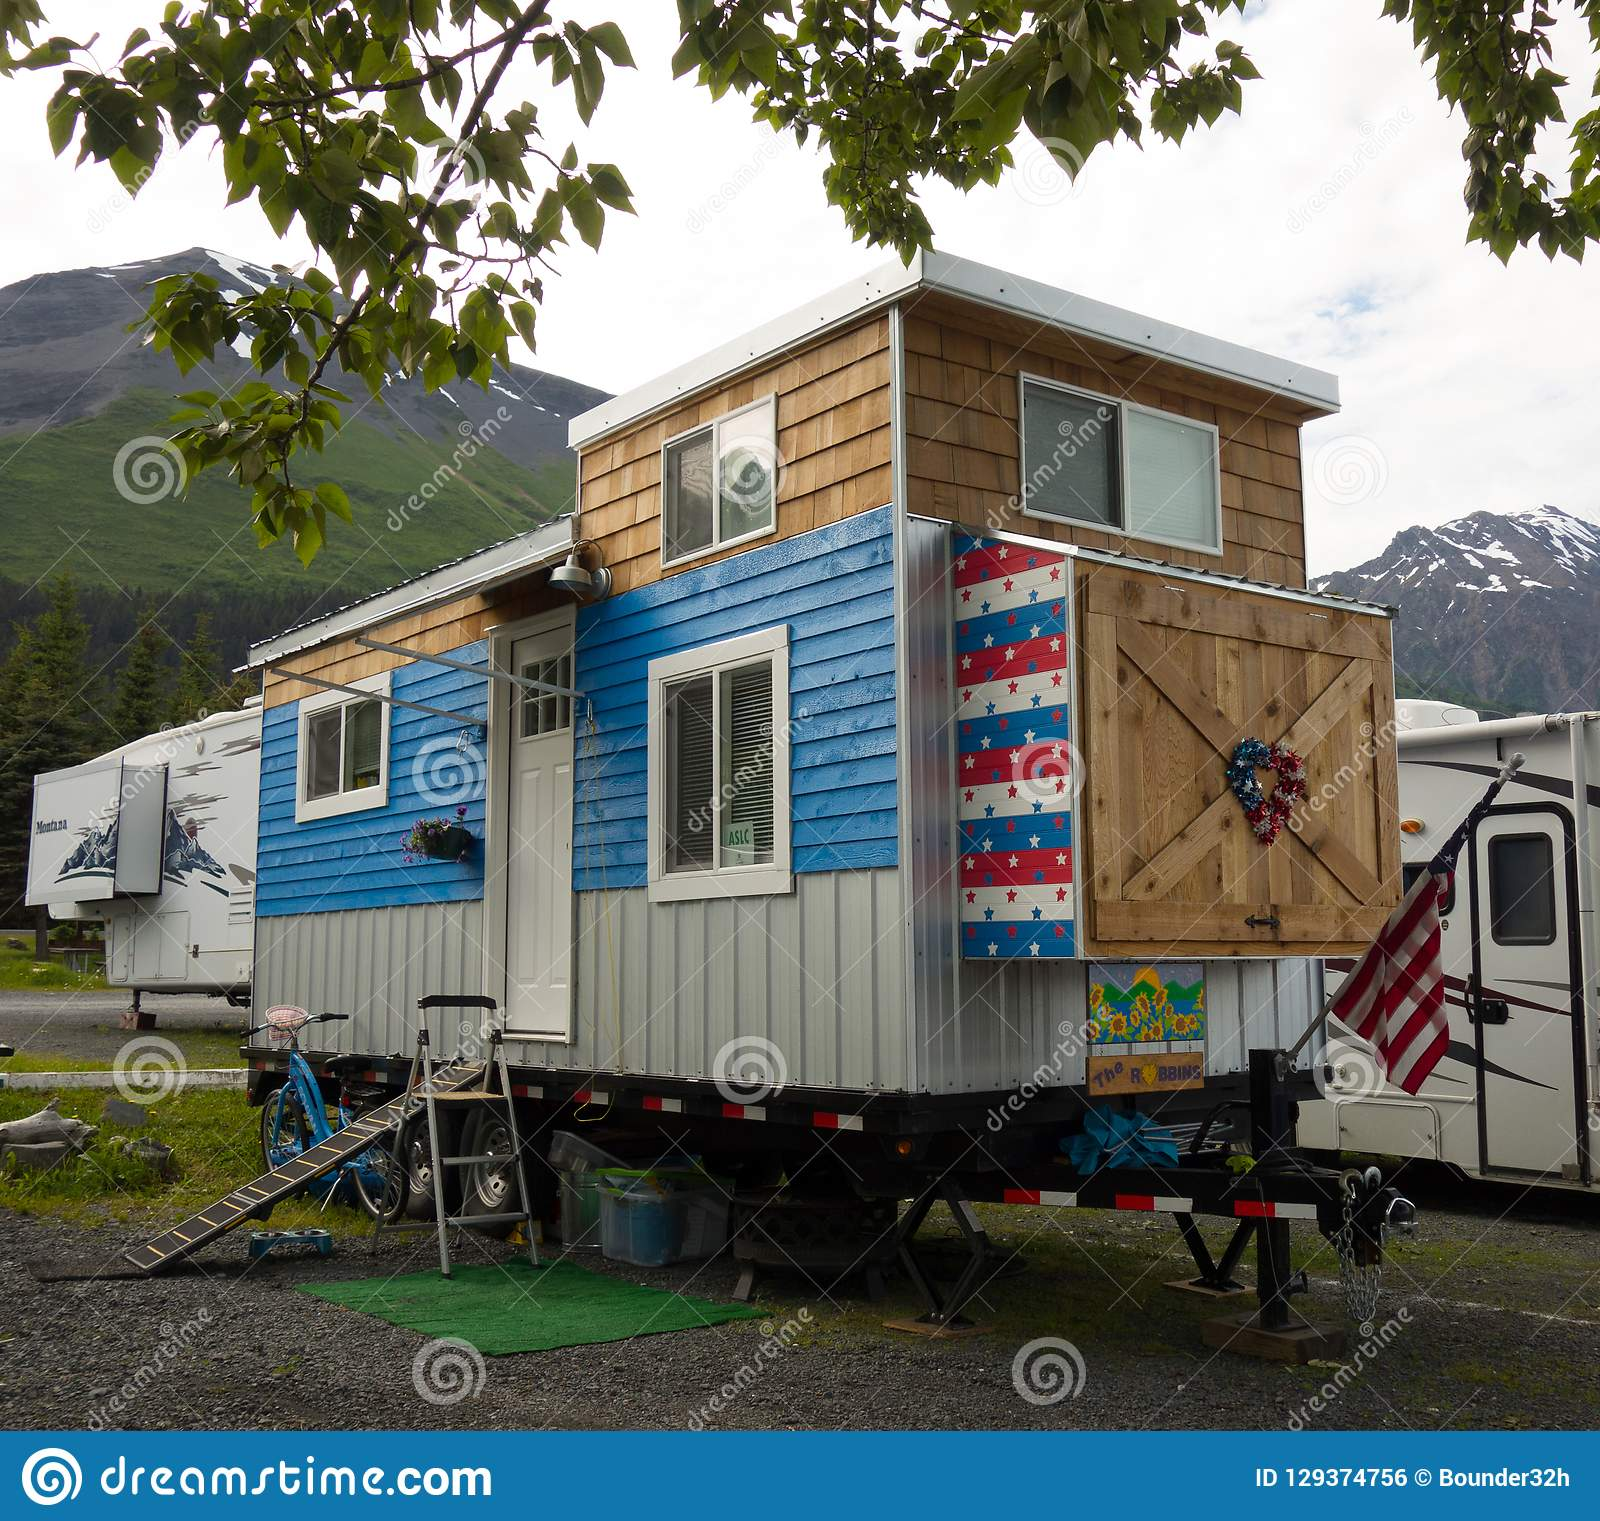 An Incredible Tiny House On Wheels As Seen At A Campground In